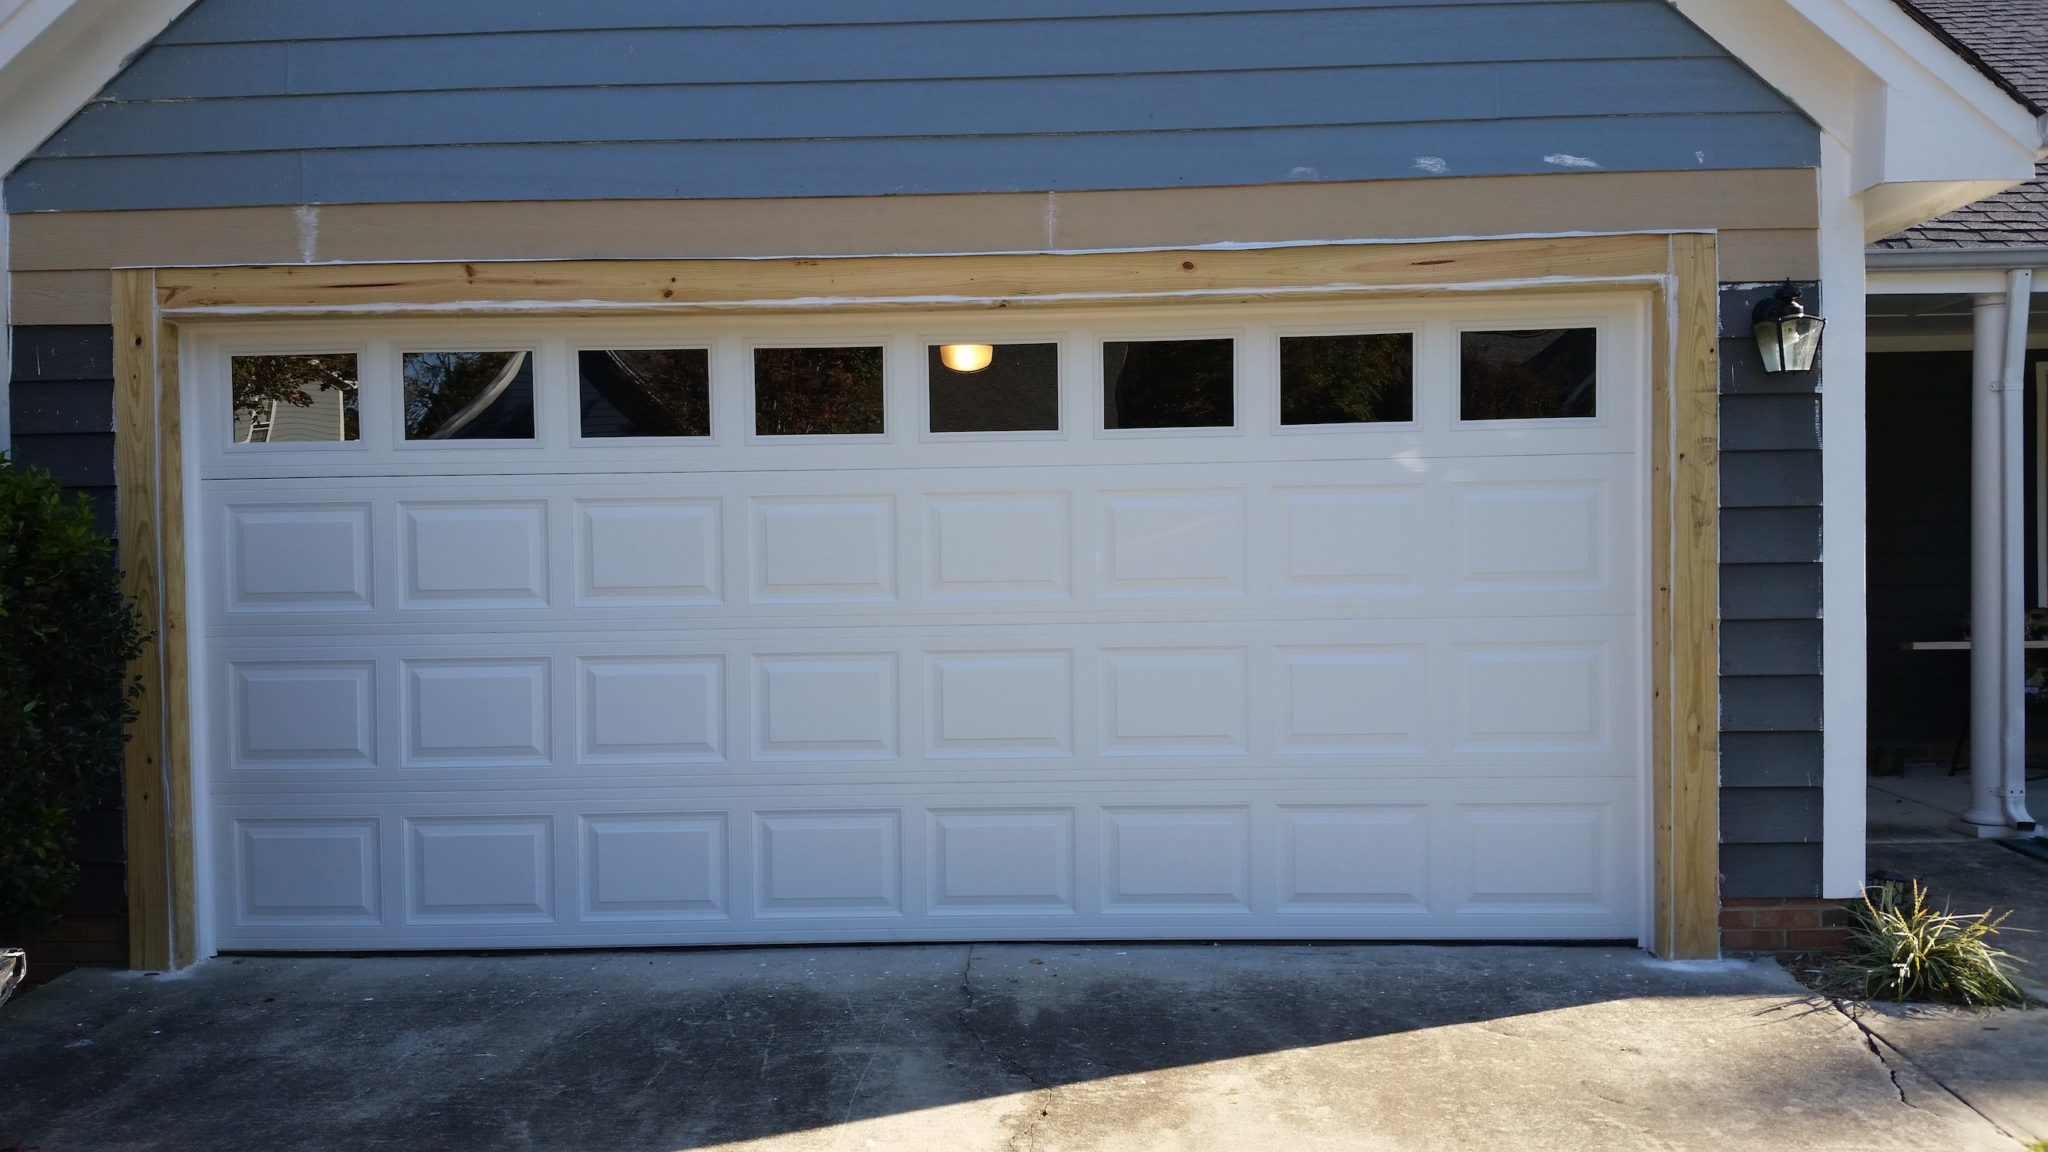 south charlotte residential garage door framing